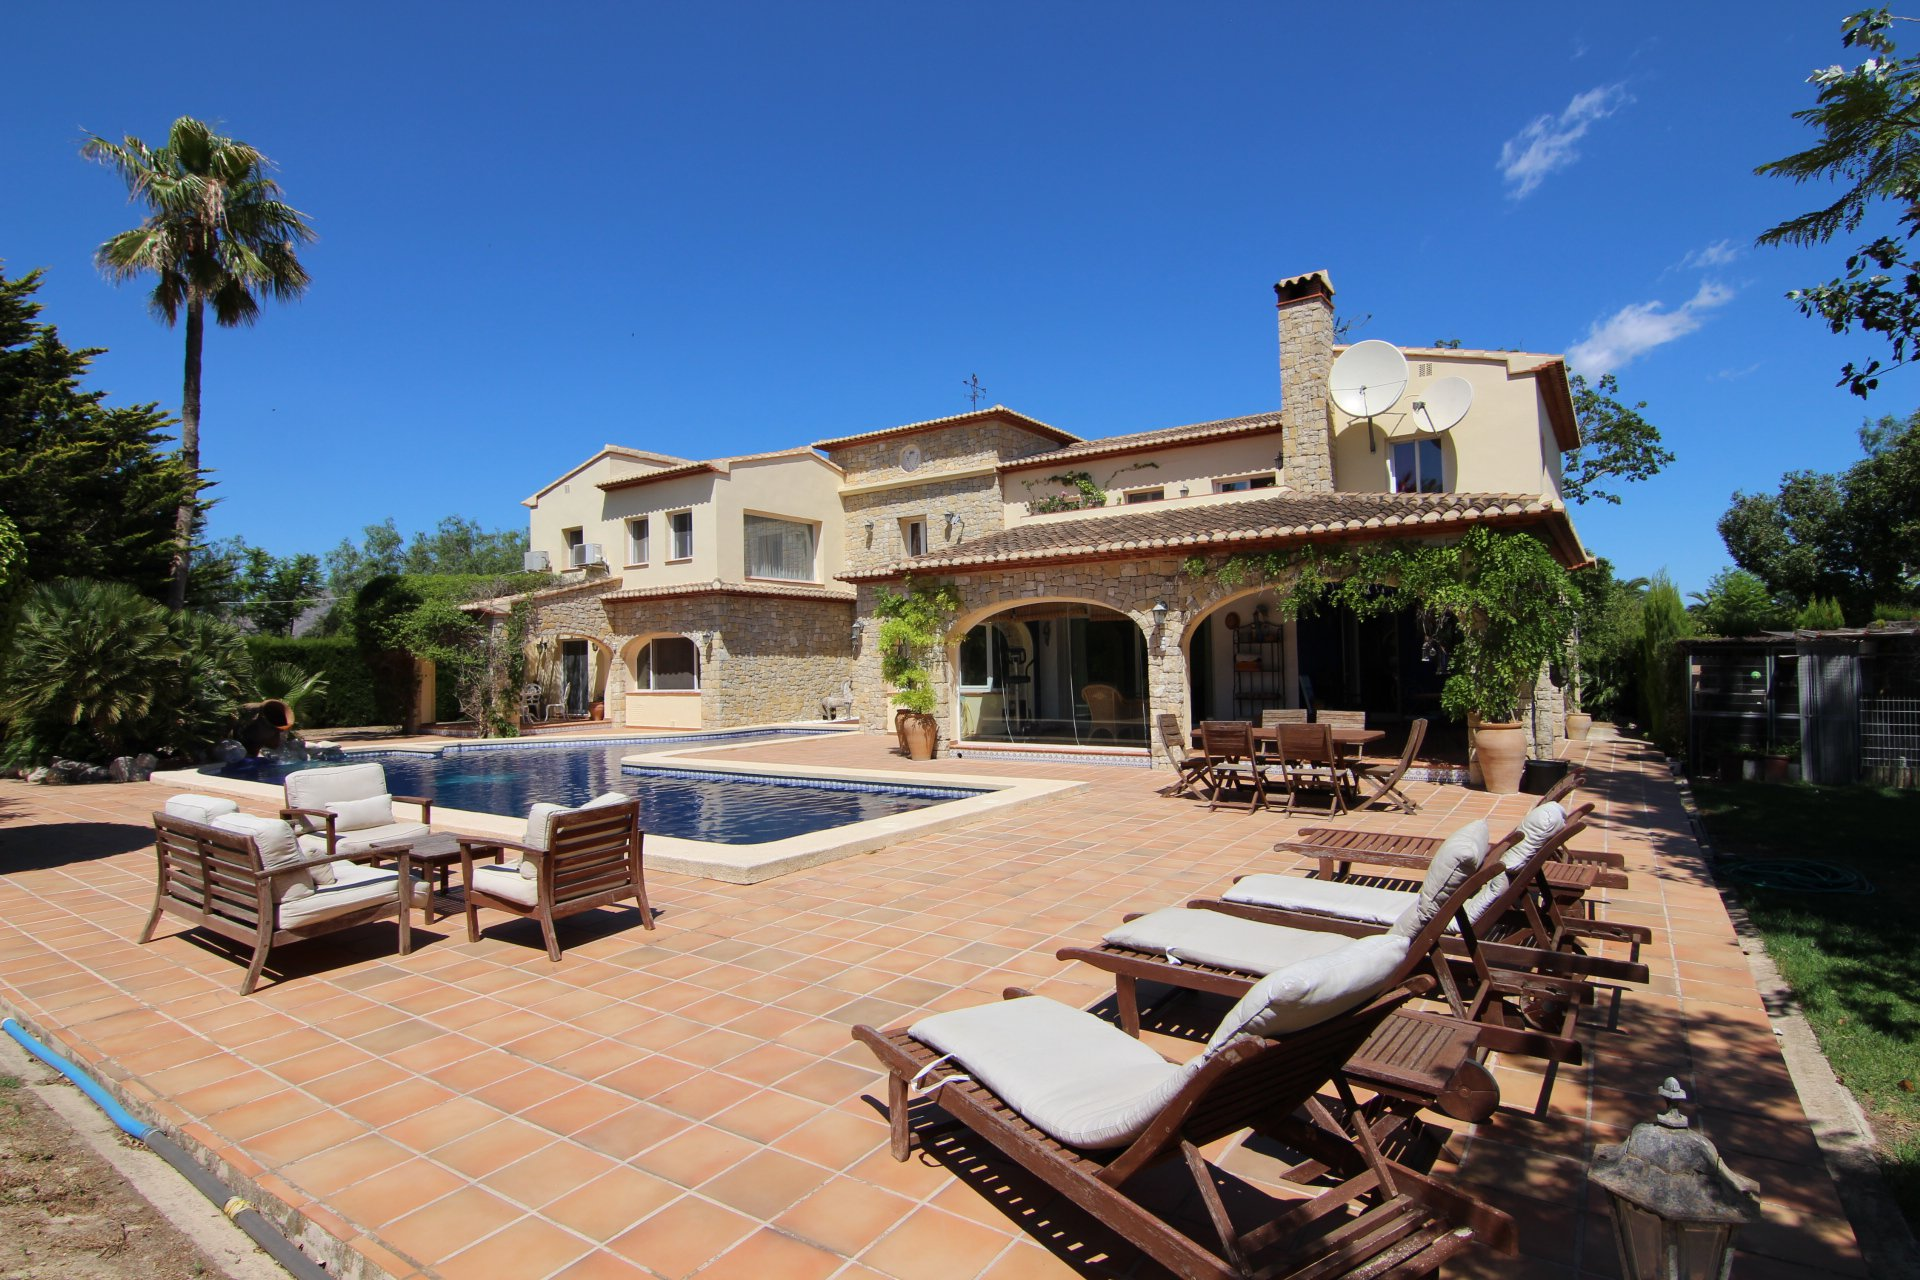 Luxury 6-bedroom villa with helipad in Benissa